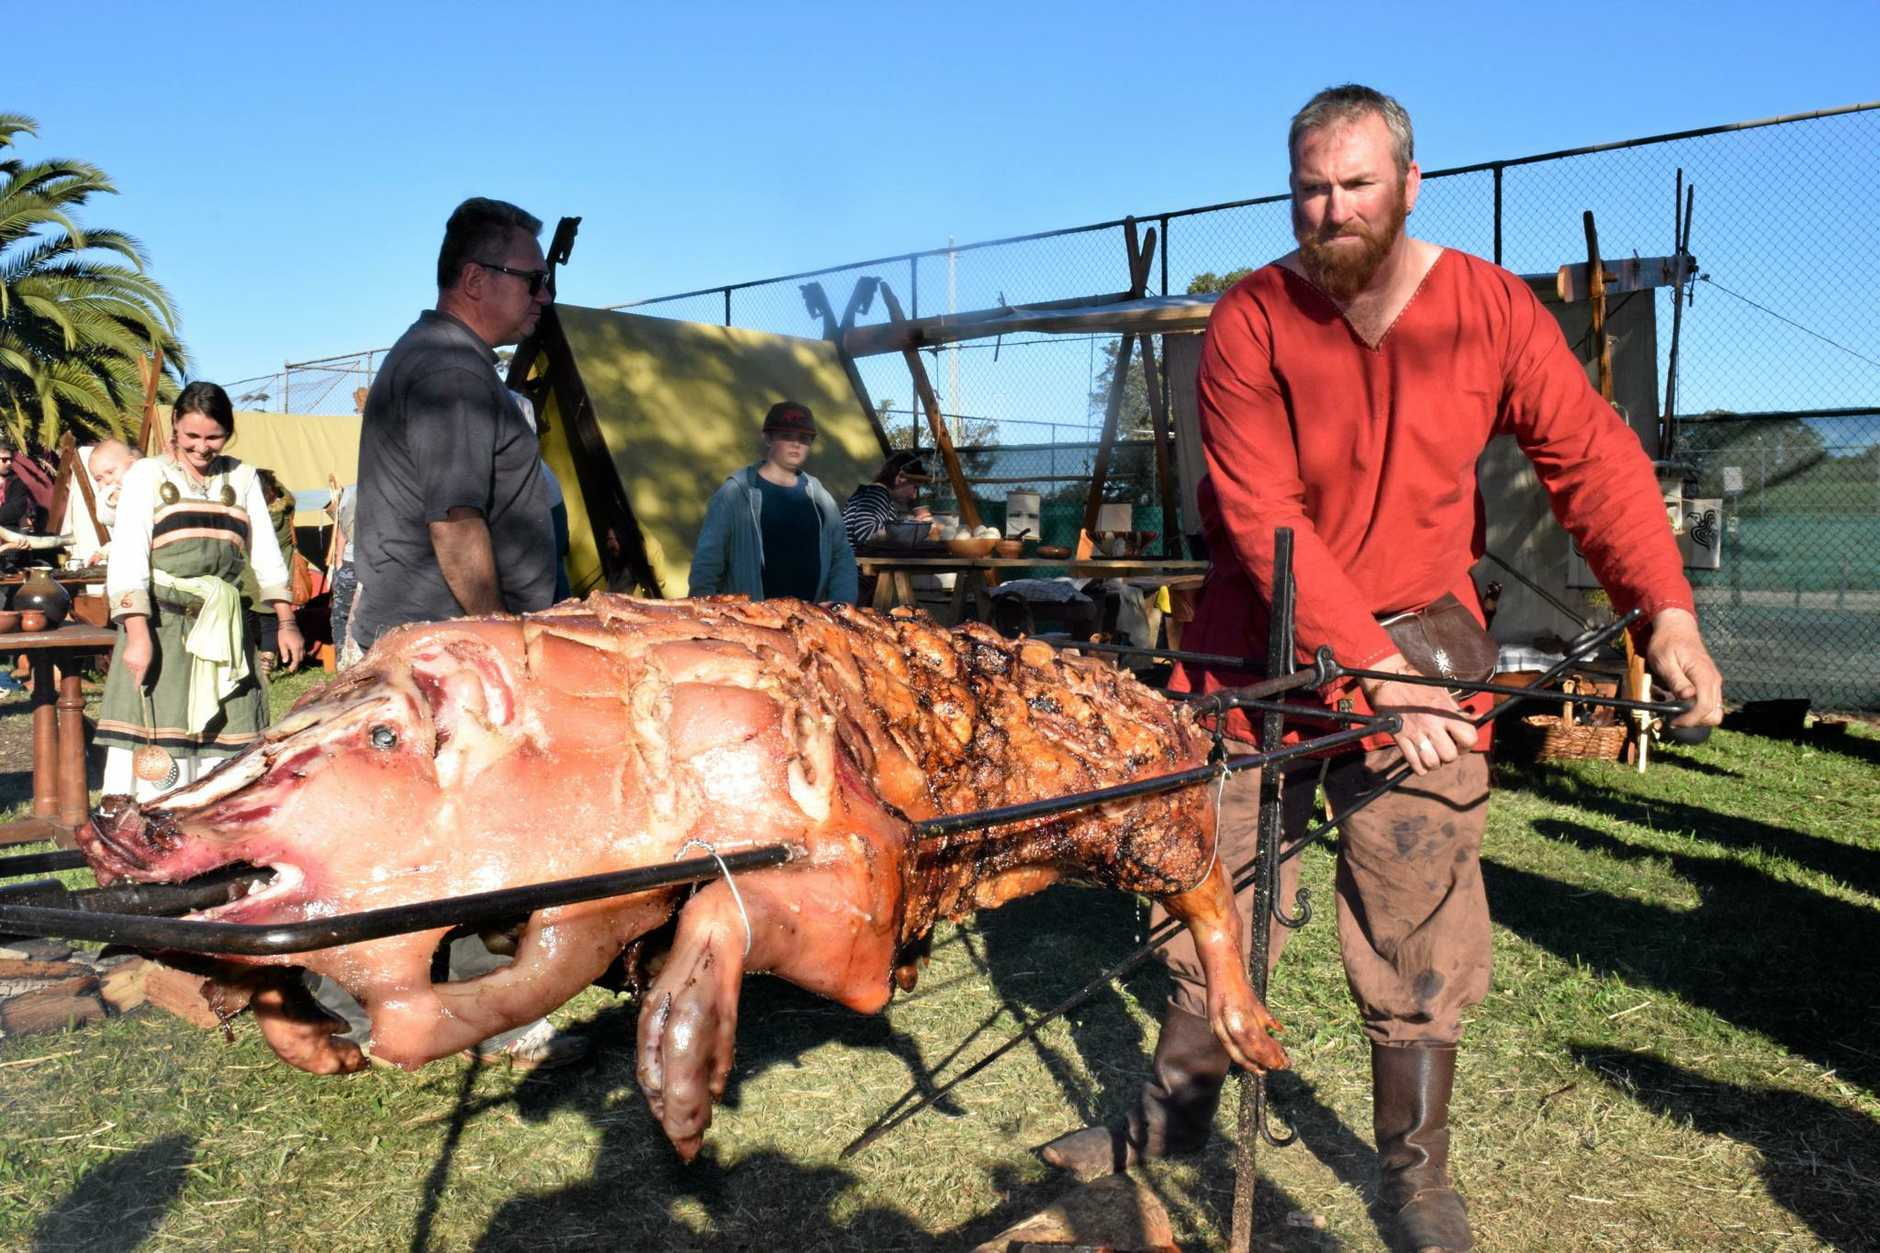 I'M STARVING: Warrior and chef Cameron Garrett helped prepare the massive feast for 170 famished Vikings, which included this tasty looking spit roast.